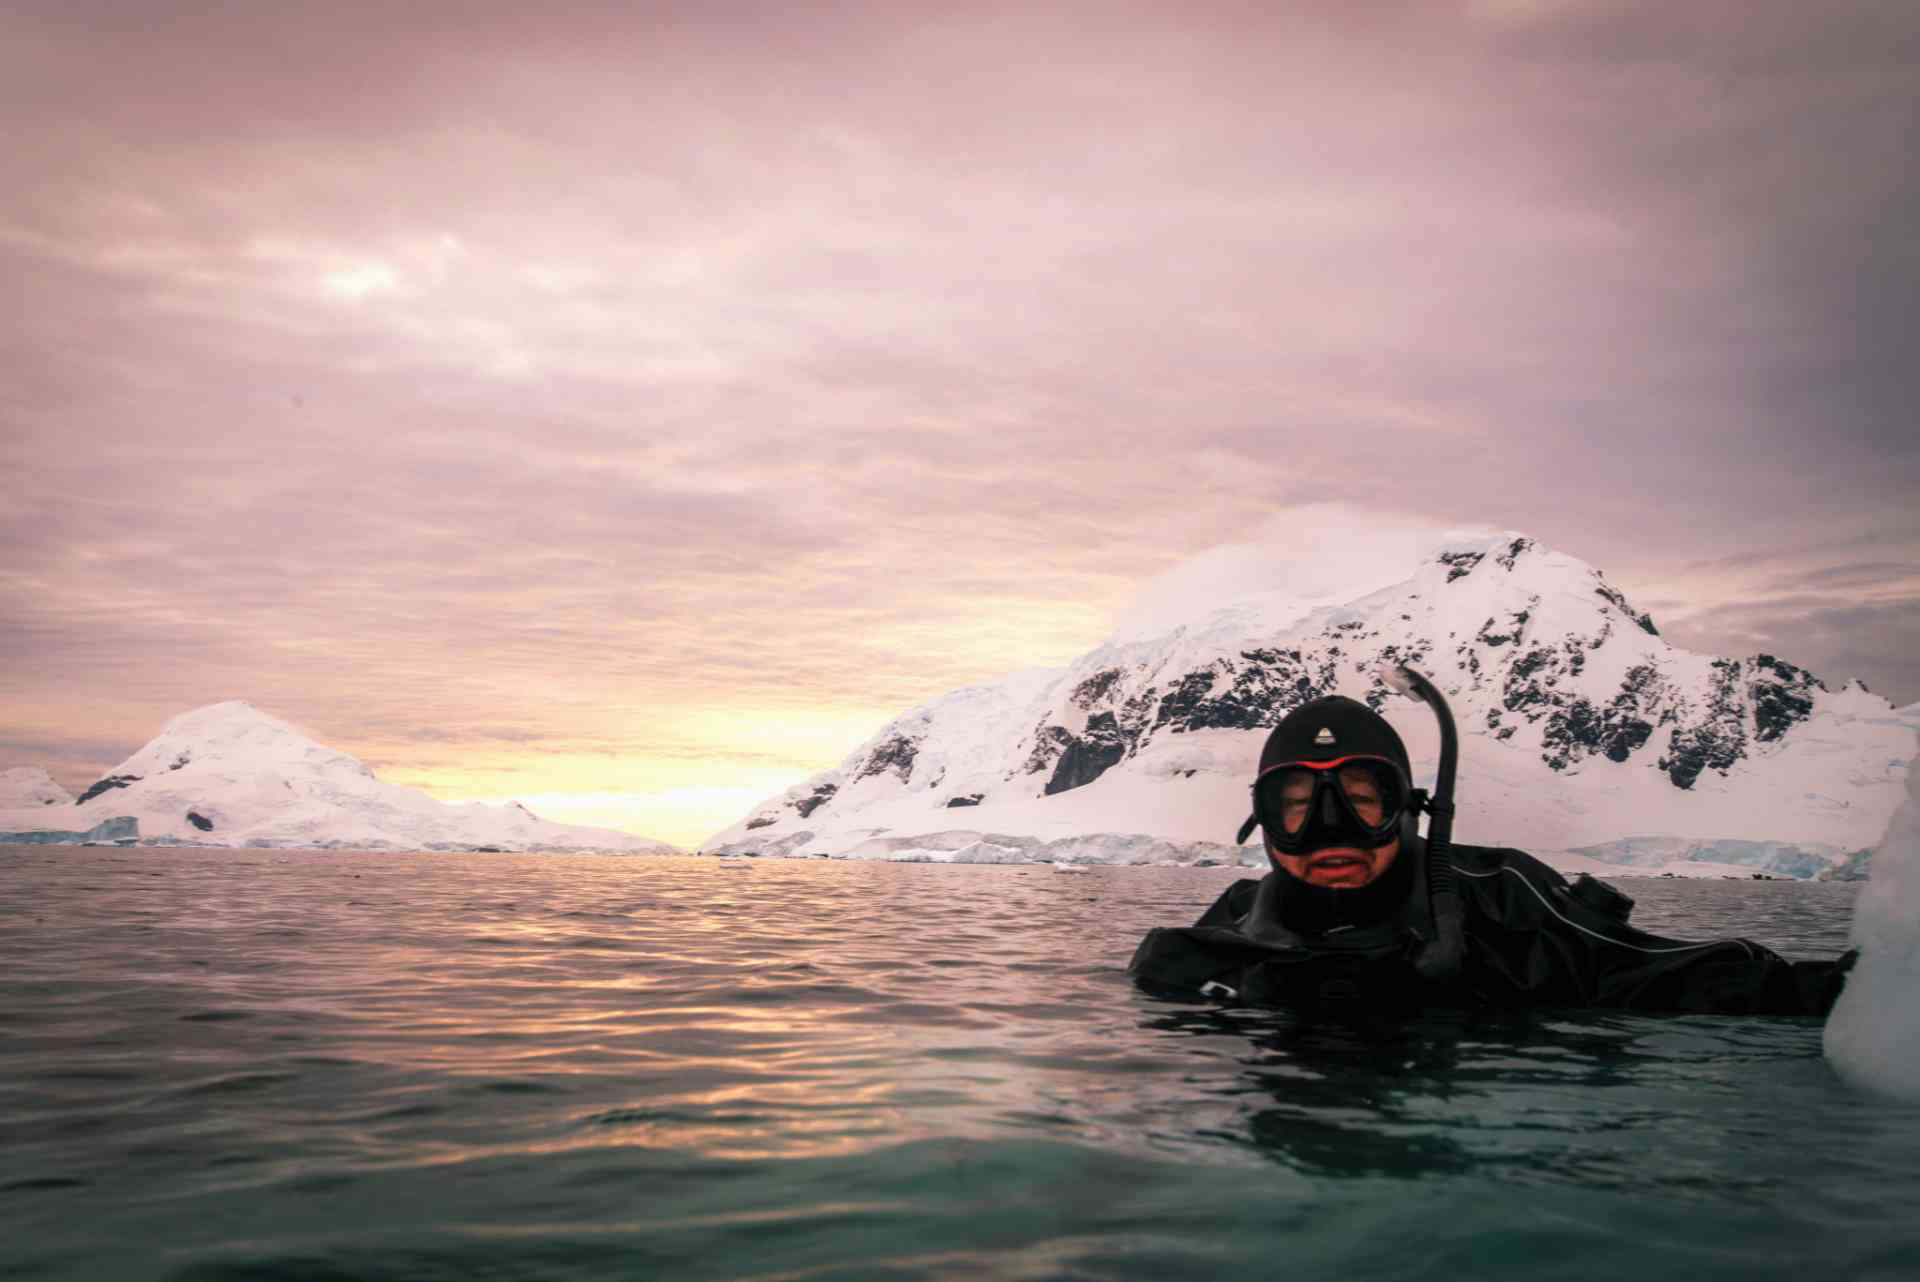 Diving at sunset, Antarctica by Aurora Expeditions